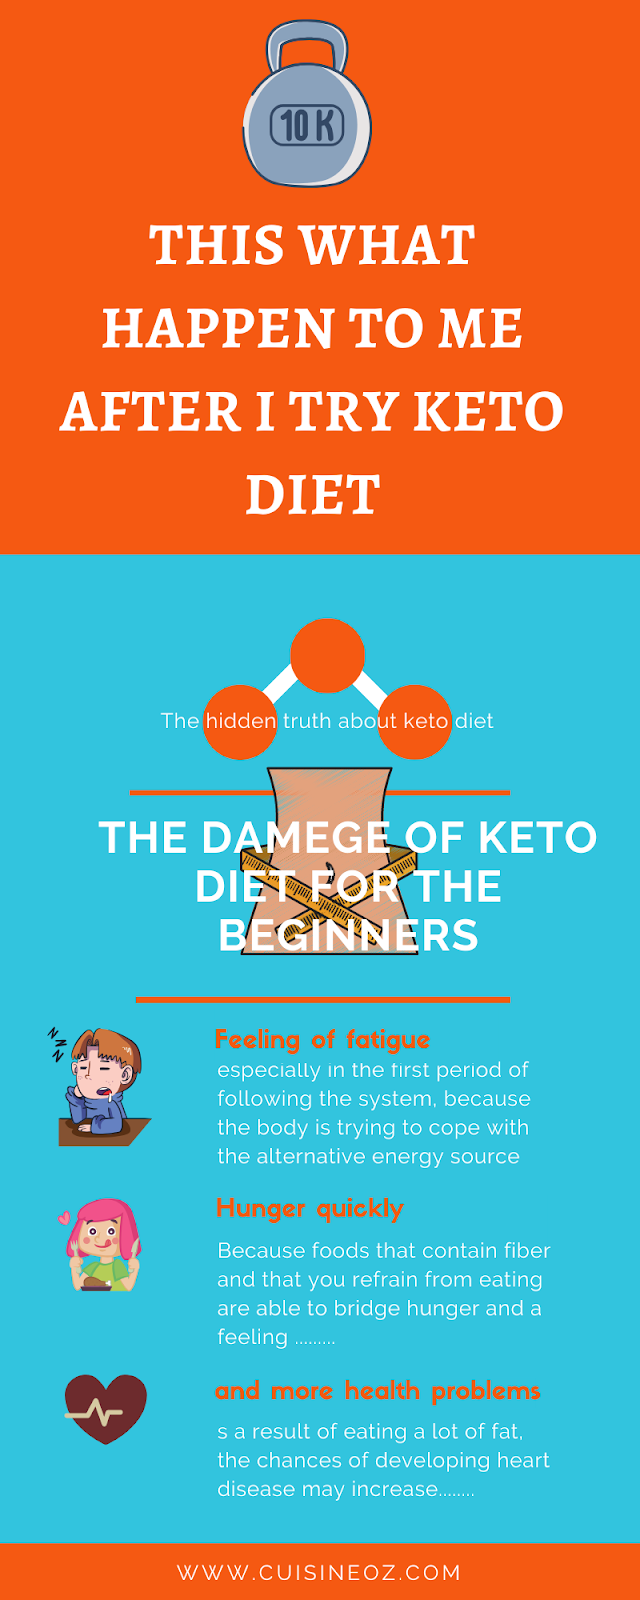 Is the Keto Diet Good for beginners or Bad? Is Ketosis a Good Way to Lose weight? is there any damage .know what good and bad in keto diet #keto #diet #fitness #ketodiet #loseweight